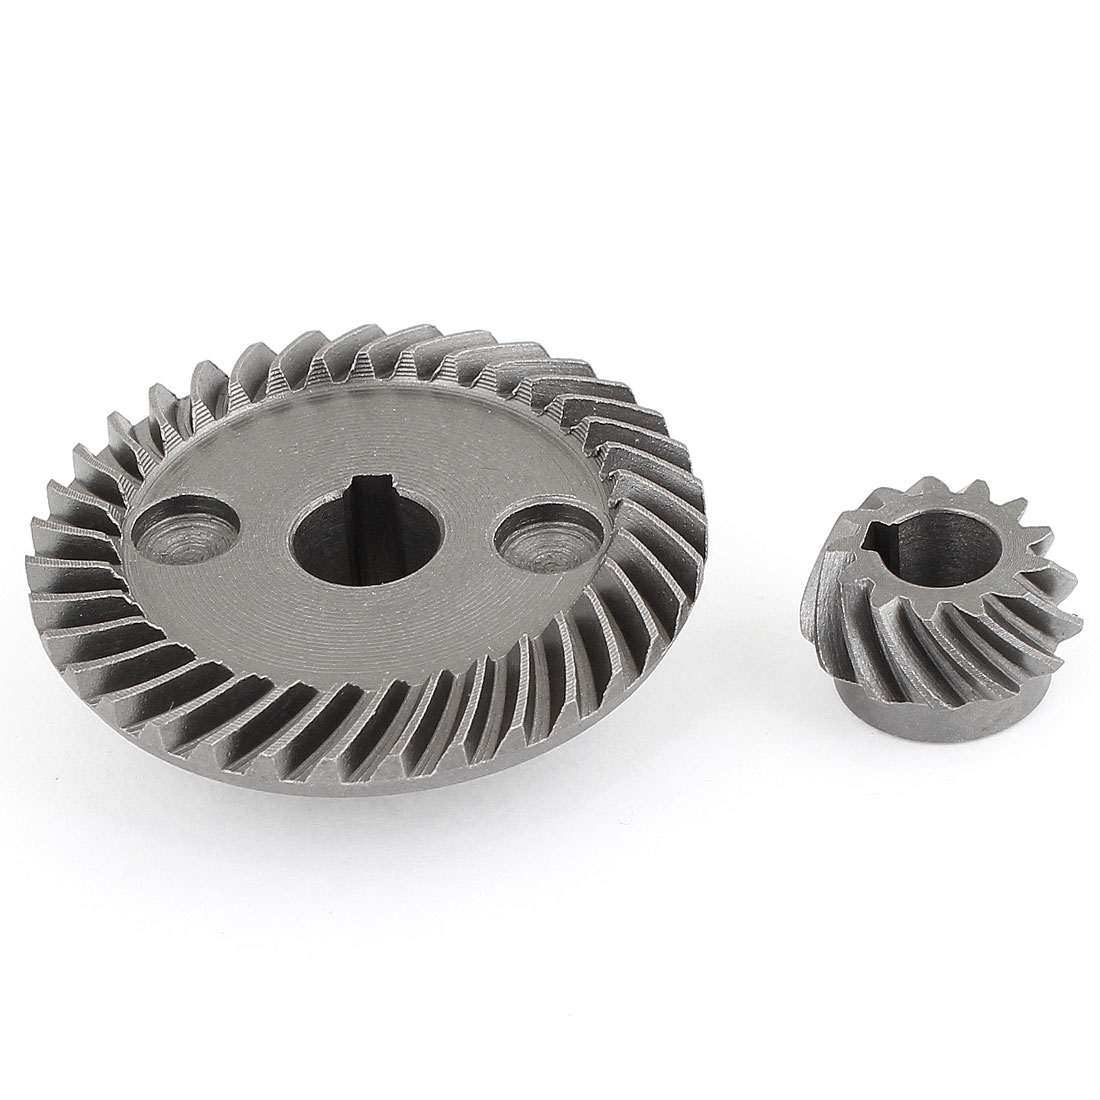 2 Pcs Replacement Angle Grinder Spiral Bevel Gear Set for Makita 9523